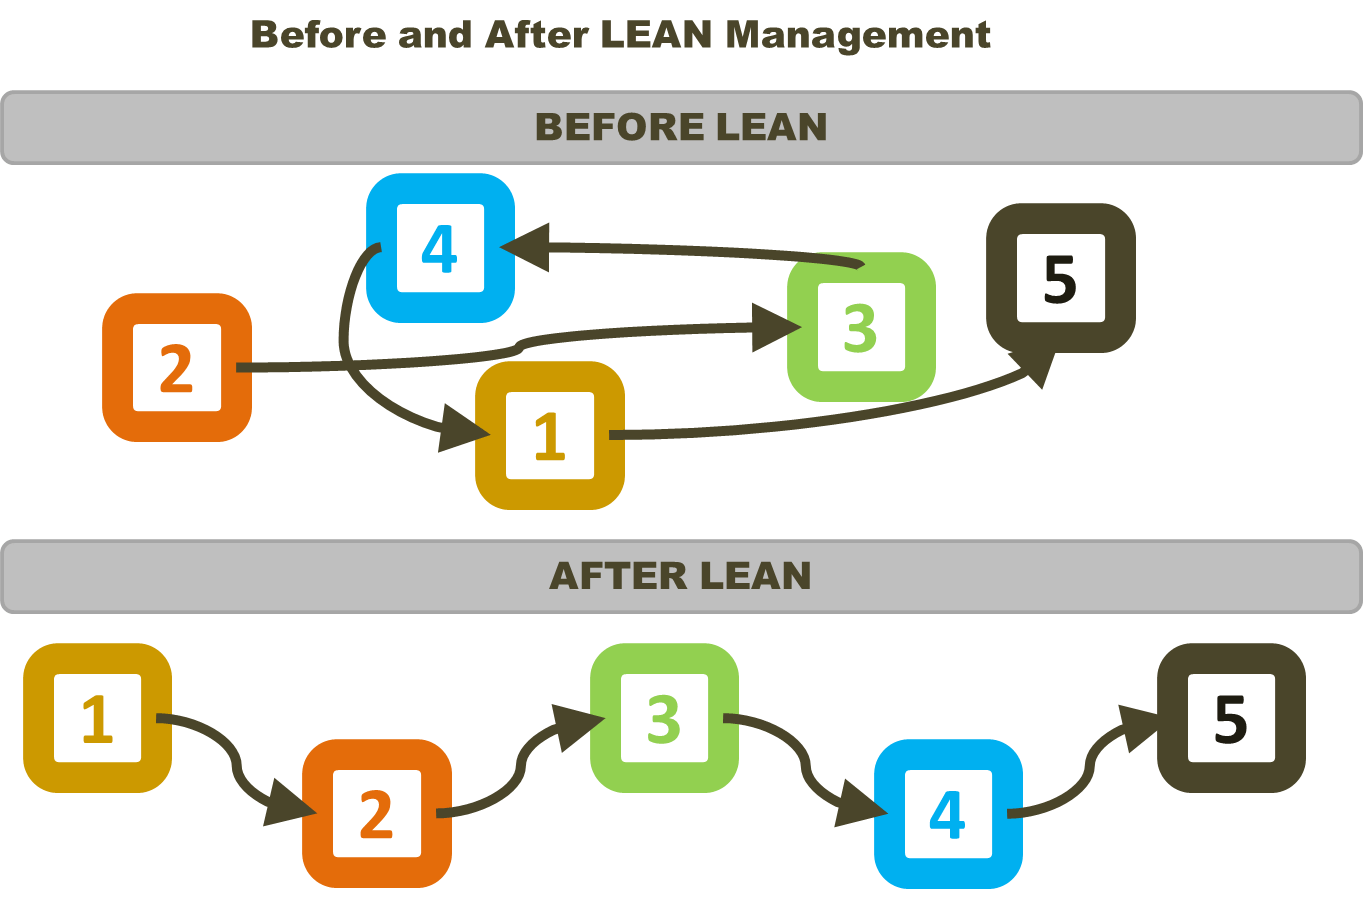 How To Sustain And Improve A Lean Culture With A Lean